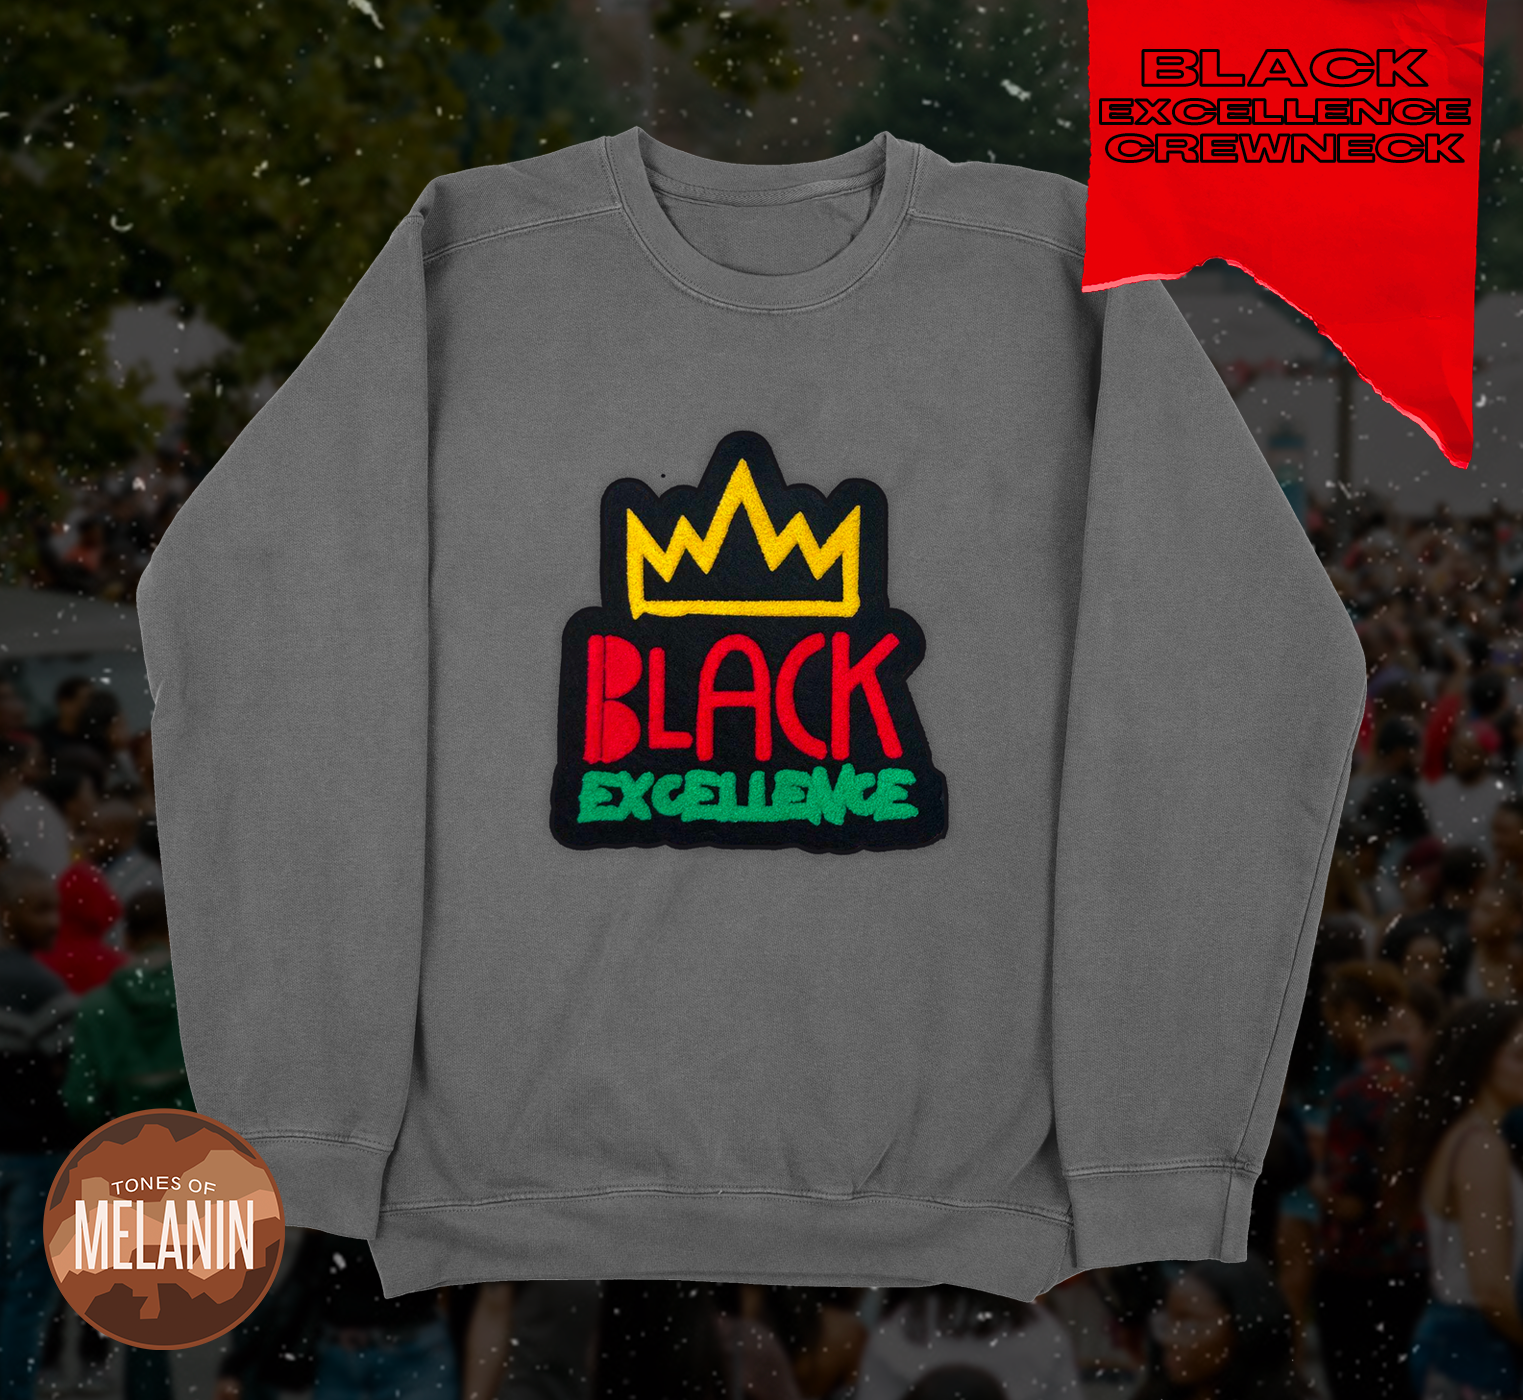 Grey Black Excellence Chenille Patch Sweatshirt